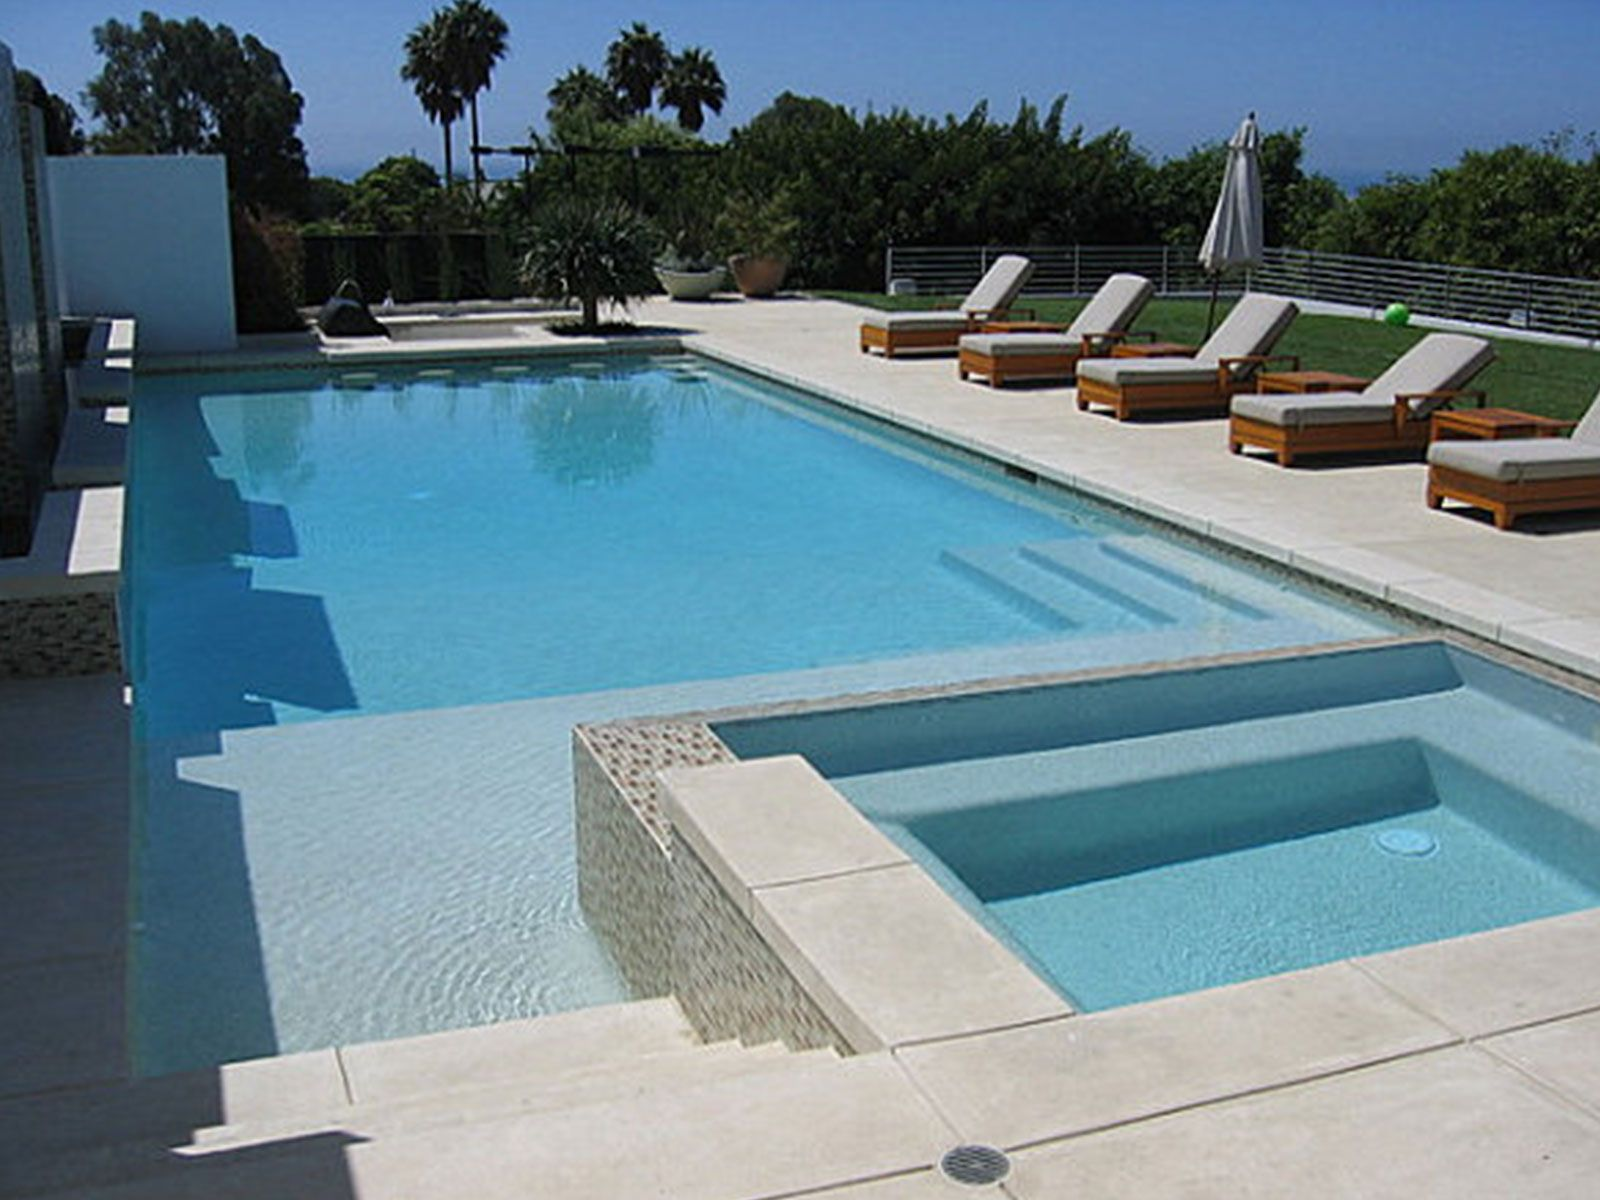 Simple swimming pool design image modern creative swimming for Pool designs images